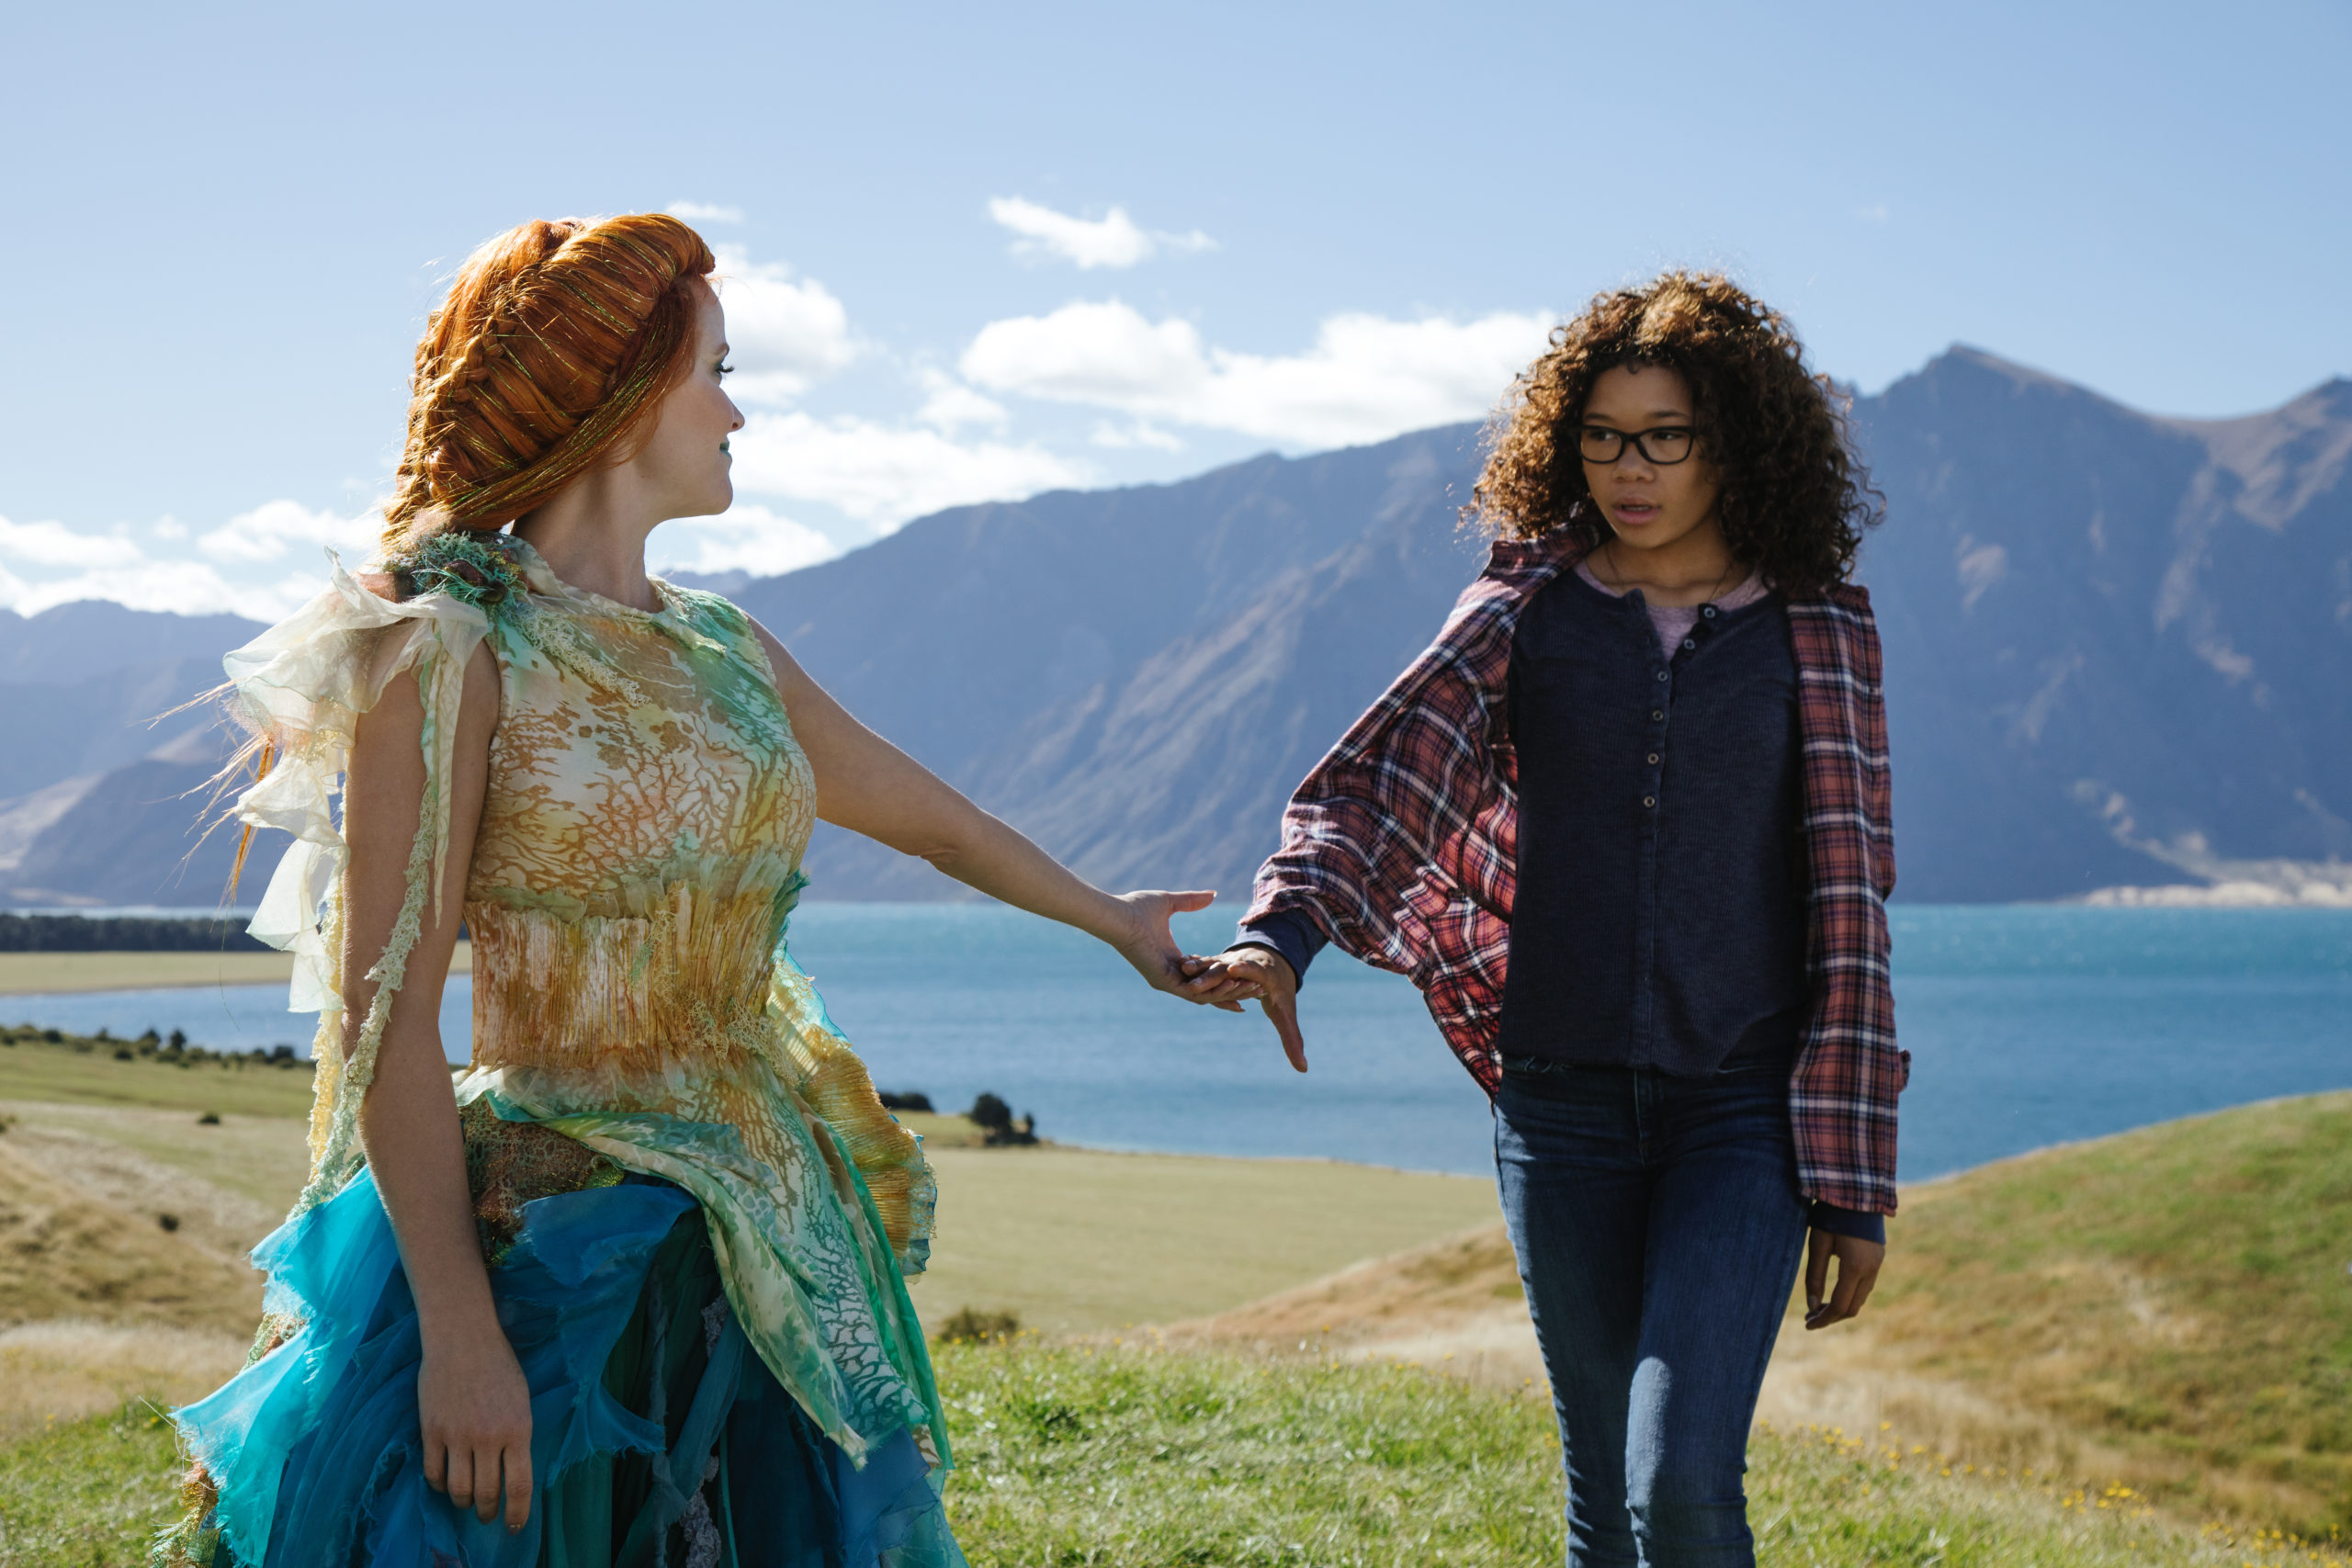 Reese Witherspoon is Mrs. Whatsit and Storm Reid is Meg Murry in Disney's A WRINKLE IN TIME.